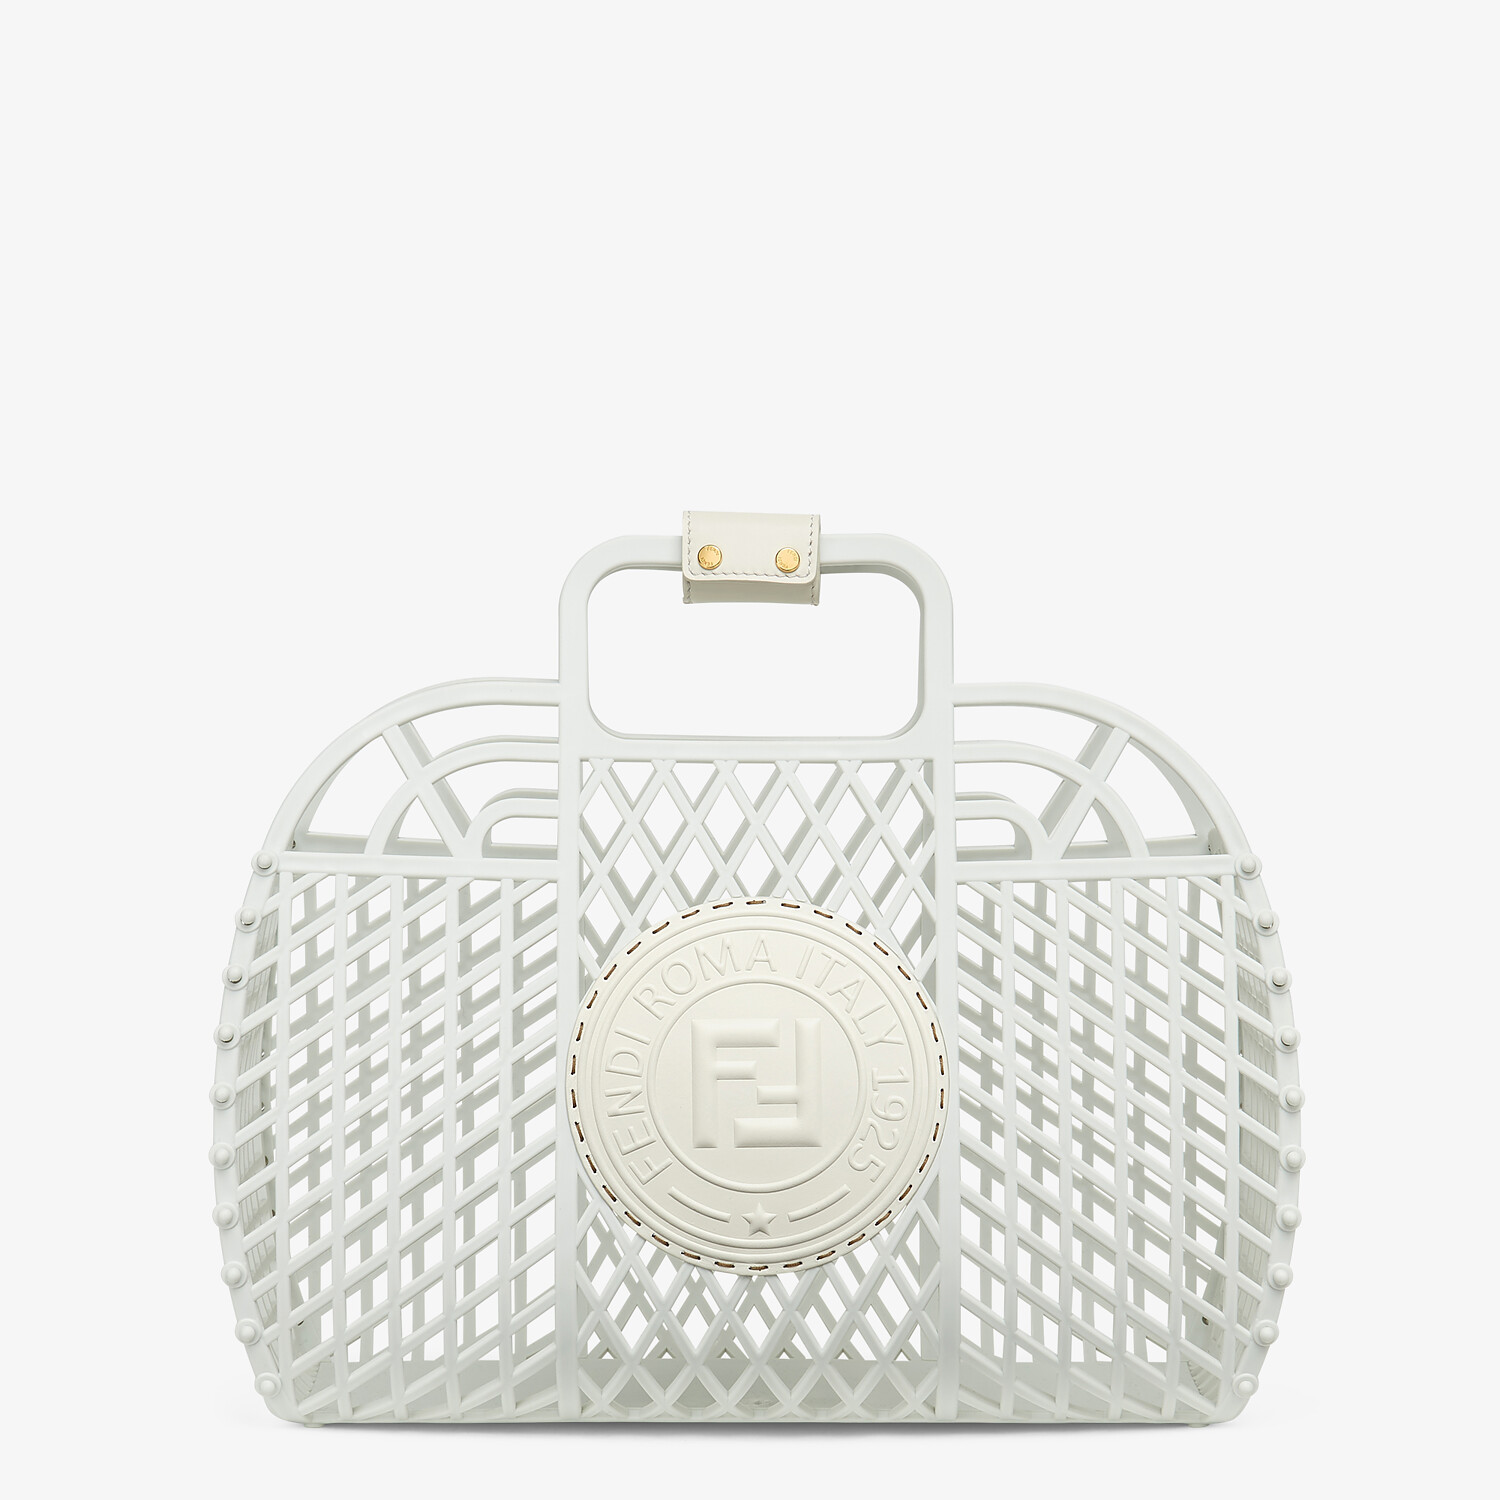 FENDI FENDI BASKET MEDIUM - White recycled plastic mini-bag - view 1 detail